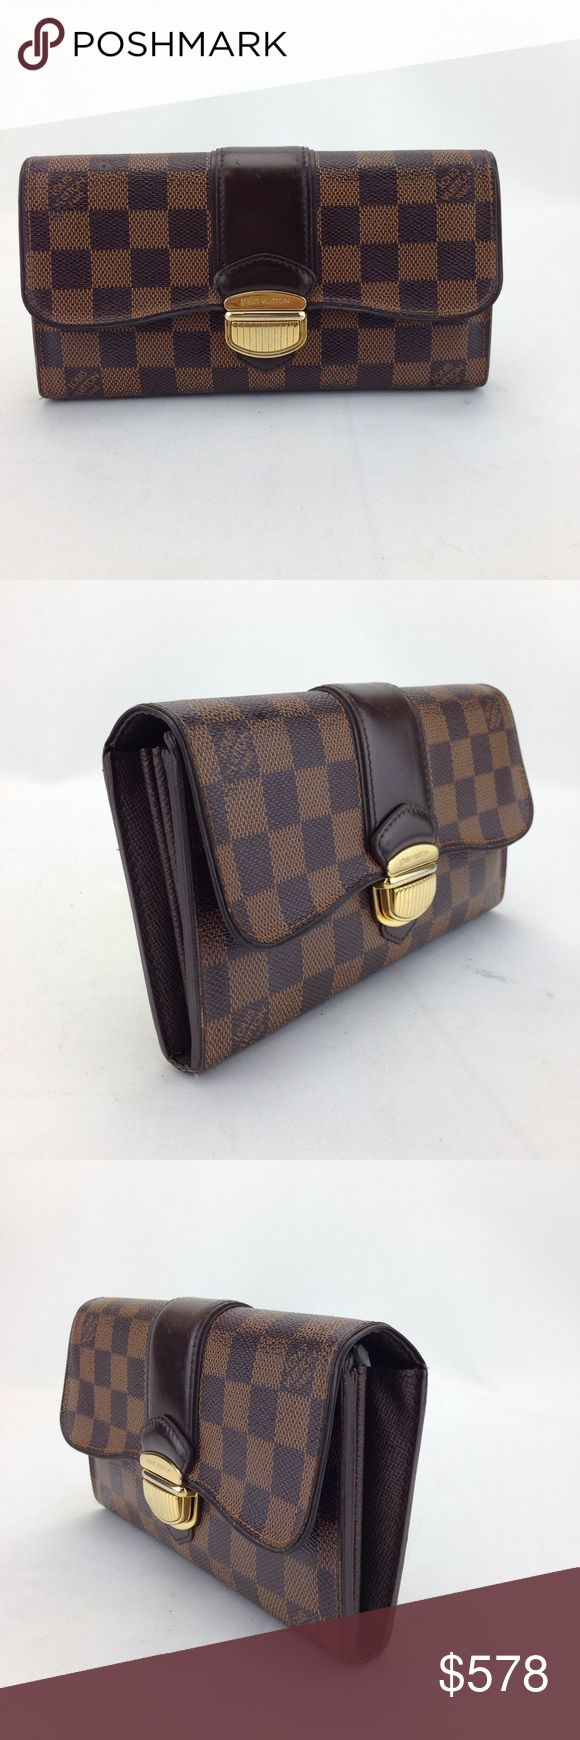 Louis Vuitton Sistina Flap Continental Wallet Louis Vuitton Damier Ebene Sistina Flap Continental Long Wallet in good condition! 100% pre-owned authentic. Date code reads CA4112. Made in Spain. No trade  Exterior features: - brown and tan checkered Damier Ebene coated canvas - solid dark brown leather strip embellishment on flap - push-lock flap closure  Interior features: - dark brown cross-grain textured leather lining - 2 bill slots, 2 open compartments, 16 card slots, and center zippered…